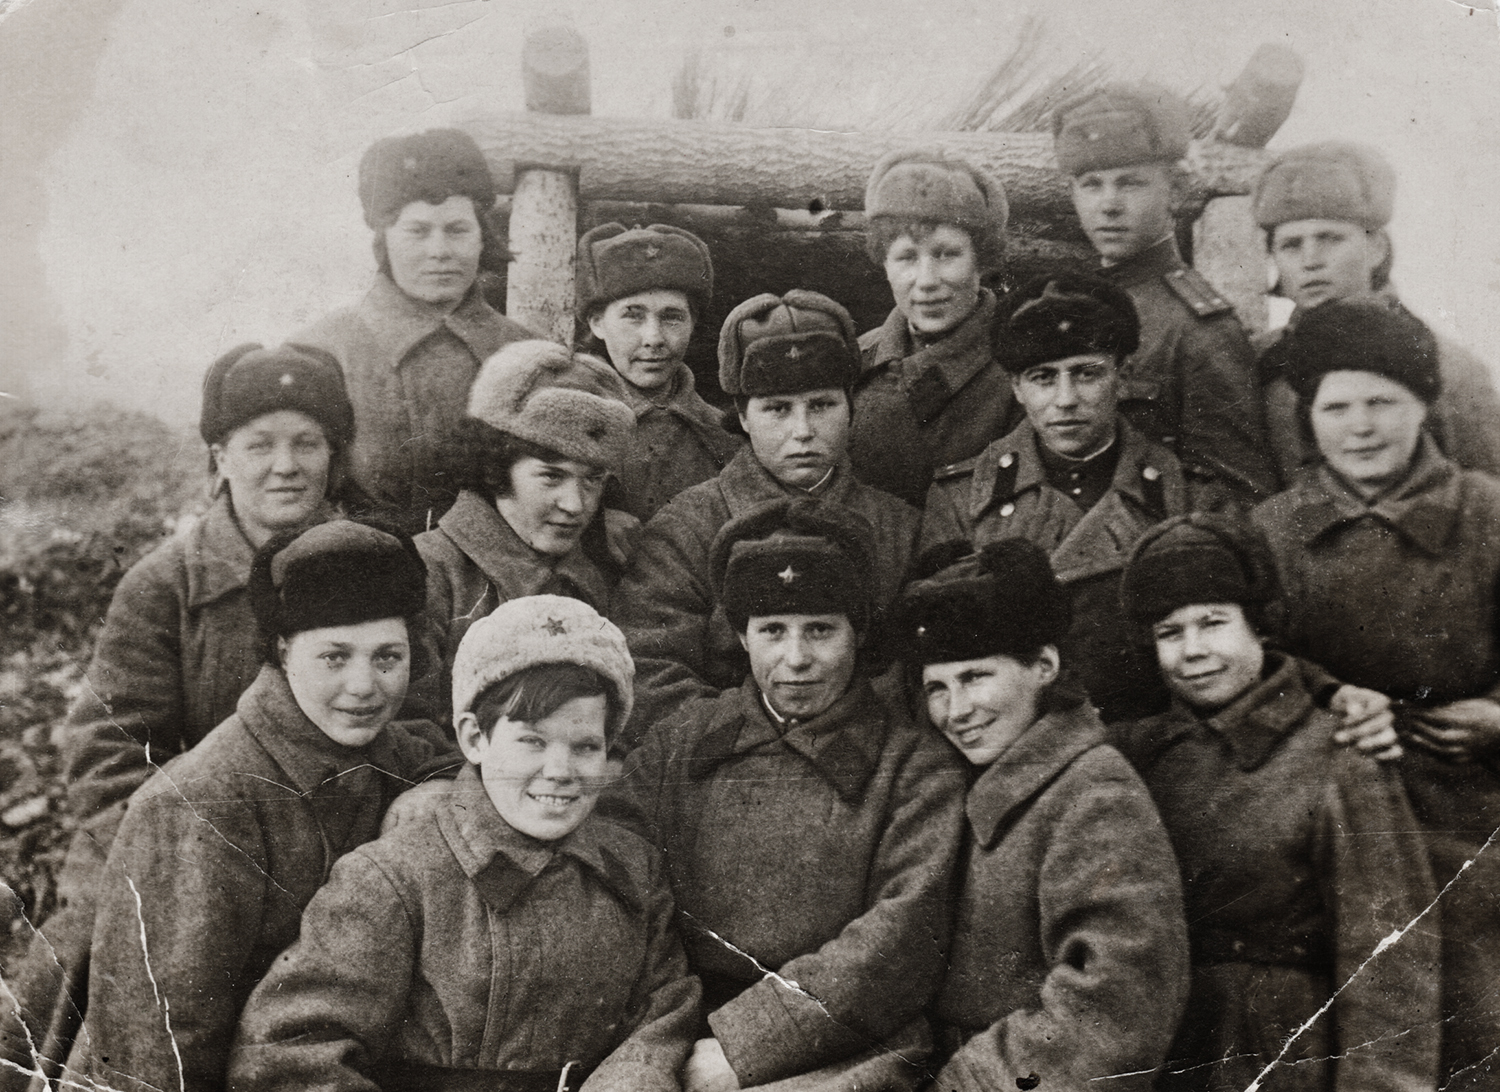 Anti-aircraft artillery division. Raisa Brook first row, first on left. Near Moscow, 1942.